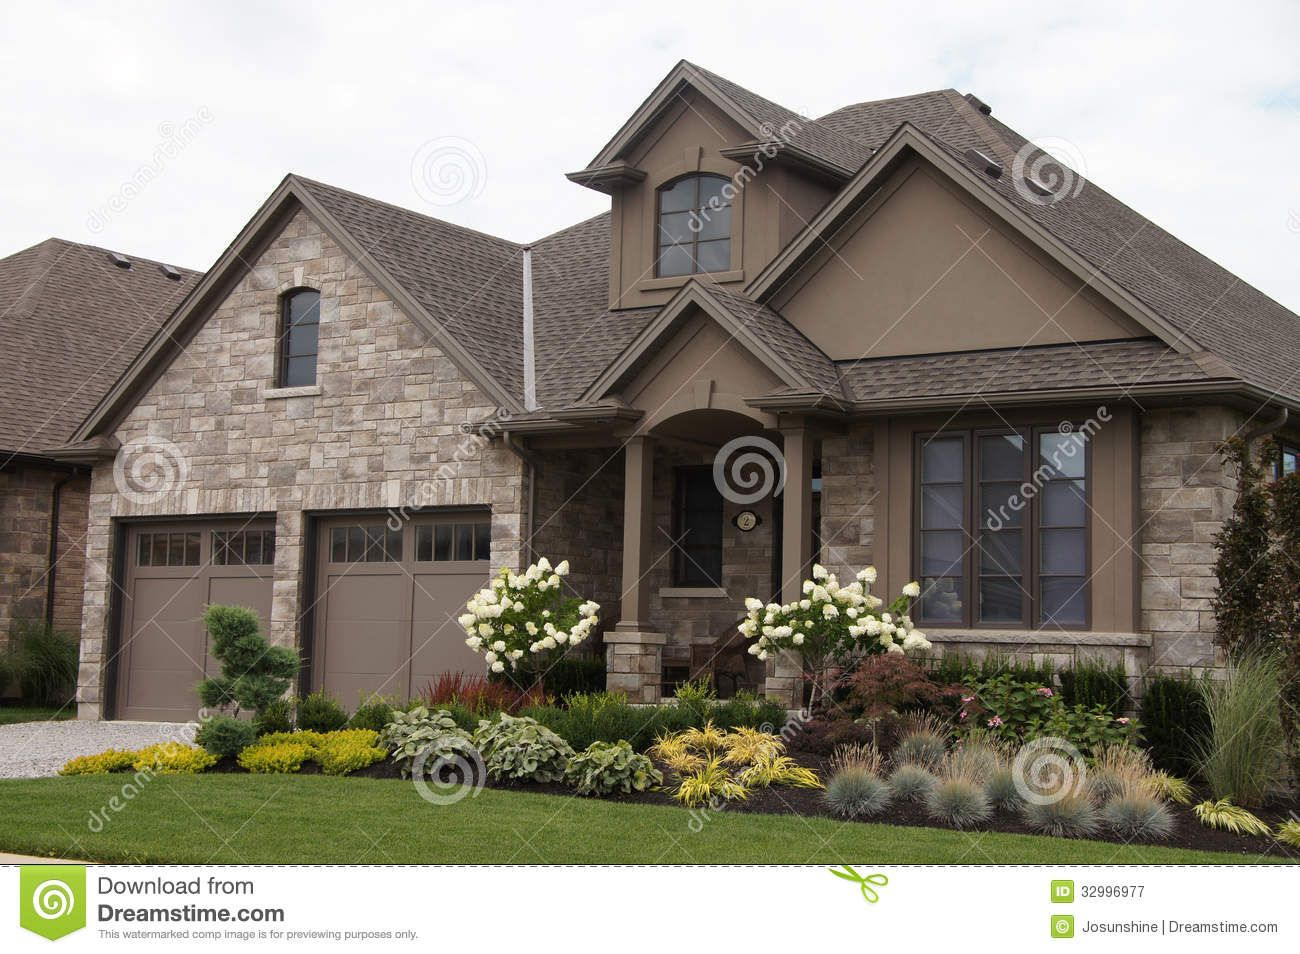 Stucco And Brick Exterior the perfect paint schemes for house exterior | stone houses, stone